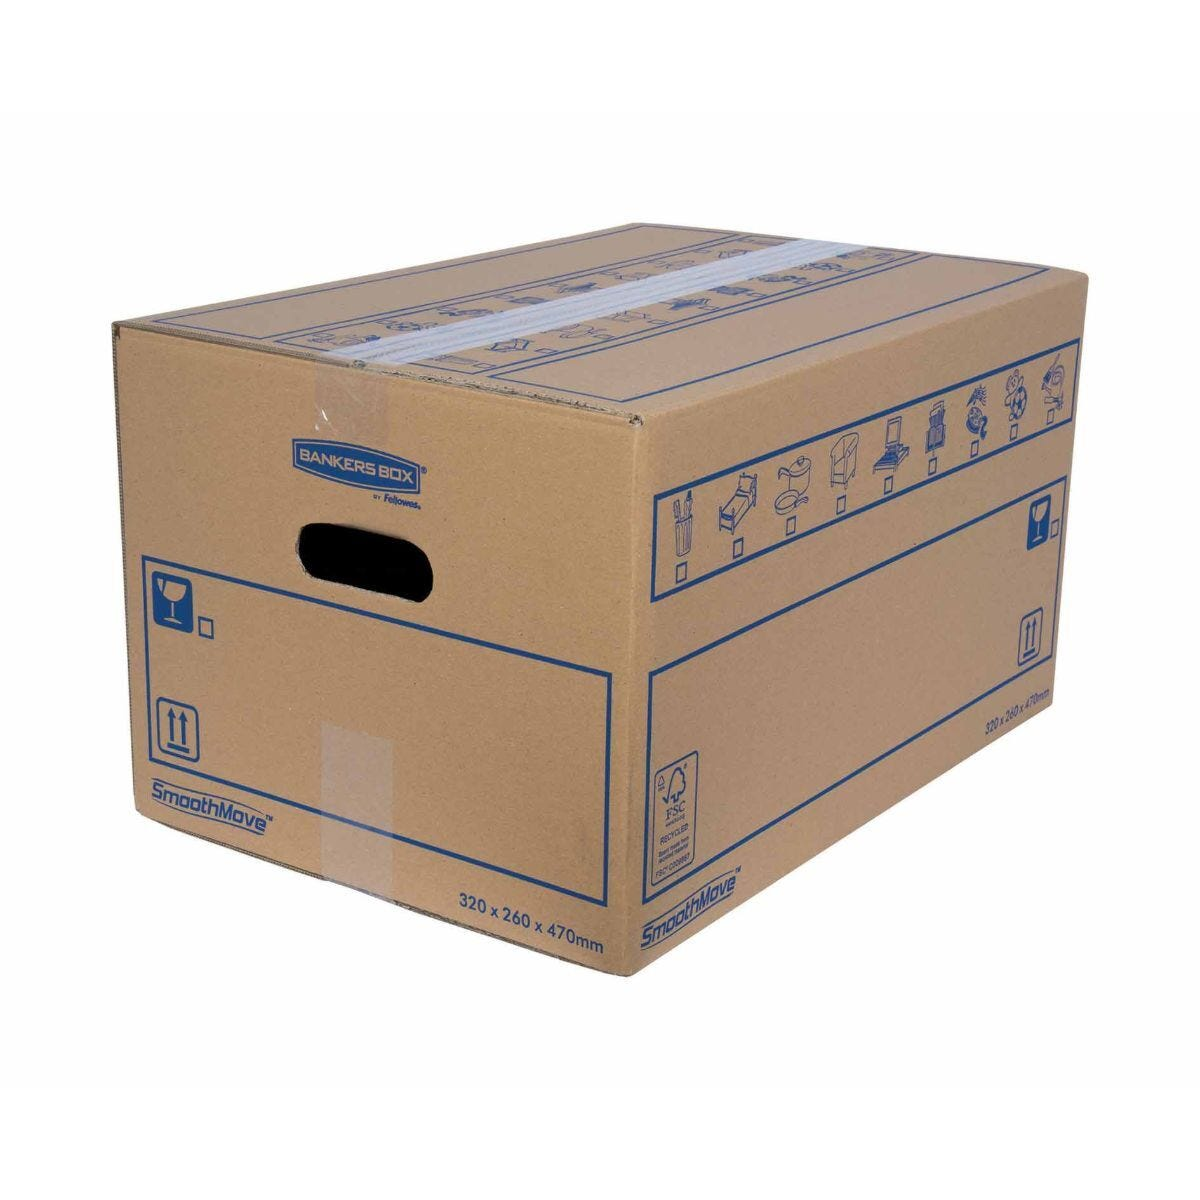 Bankers Box by Fellowes SmoothMove Standard Box Small Pack of 10